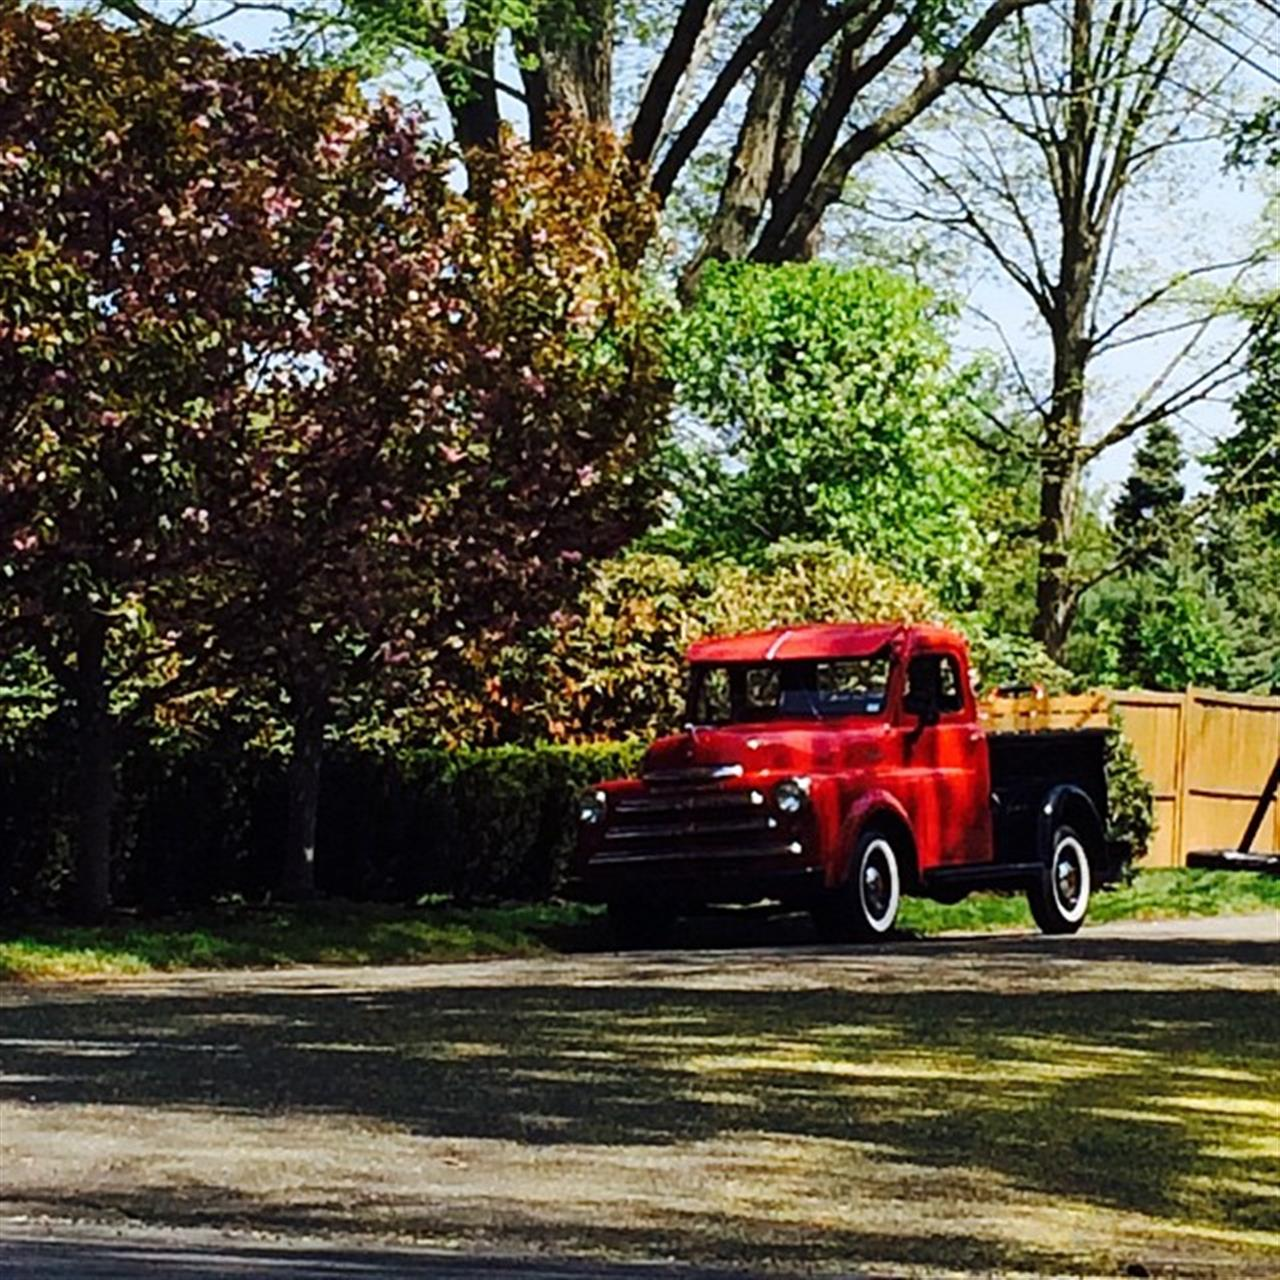 Southport May 2015 #cars #country #ilovefairfield #fairfieldct #LeadingRELocal